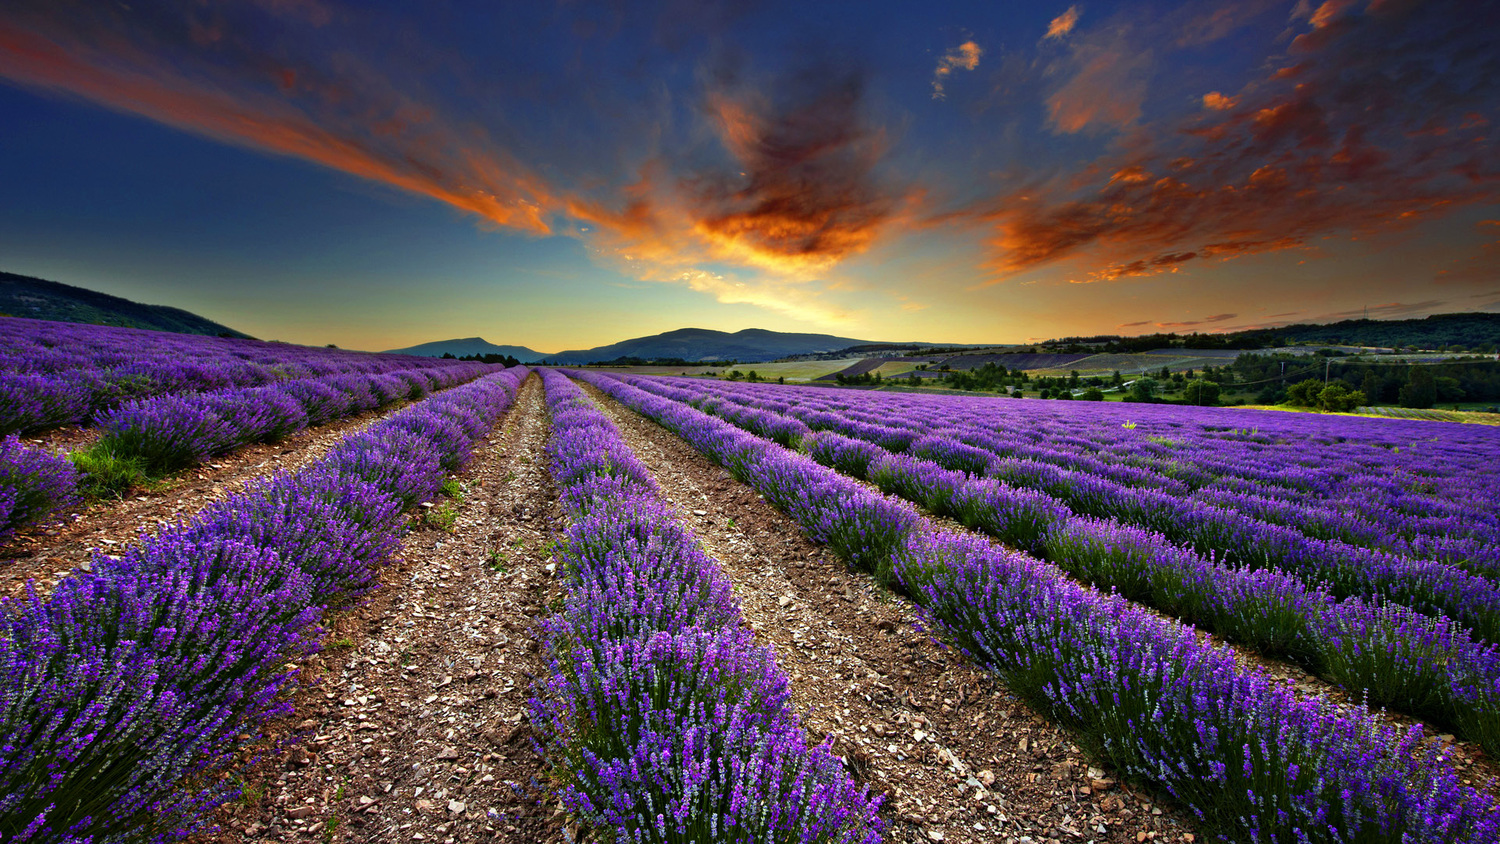 Sunset over a lavender field in Oregon. Does it get more beautiful than that?